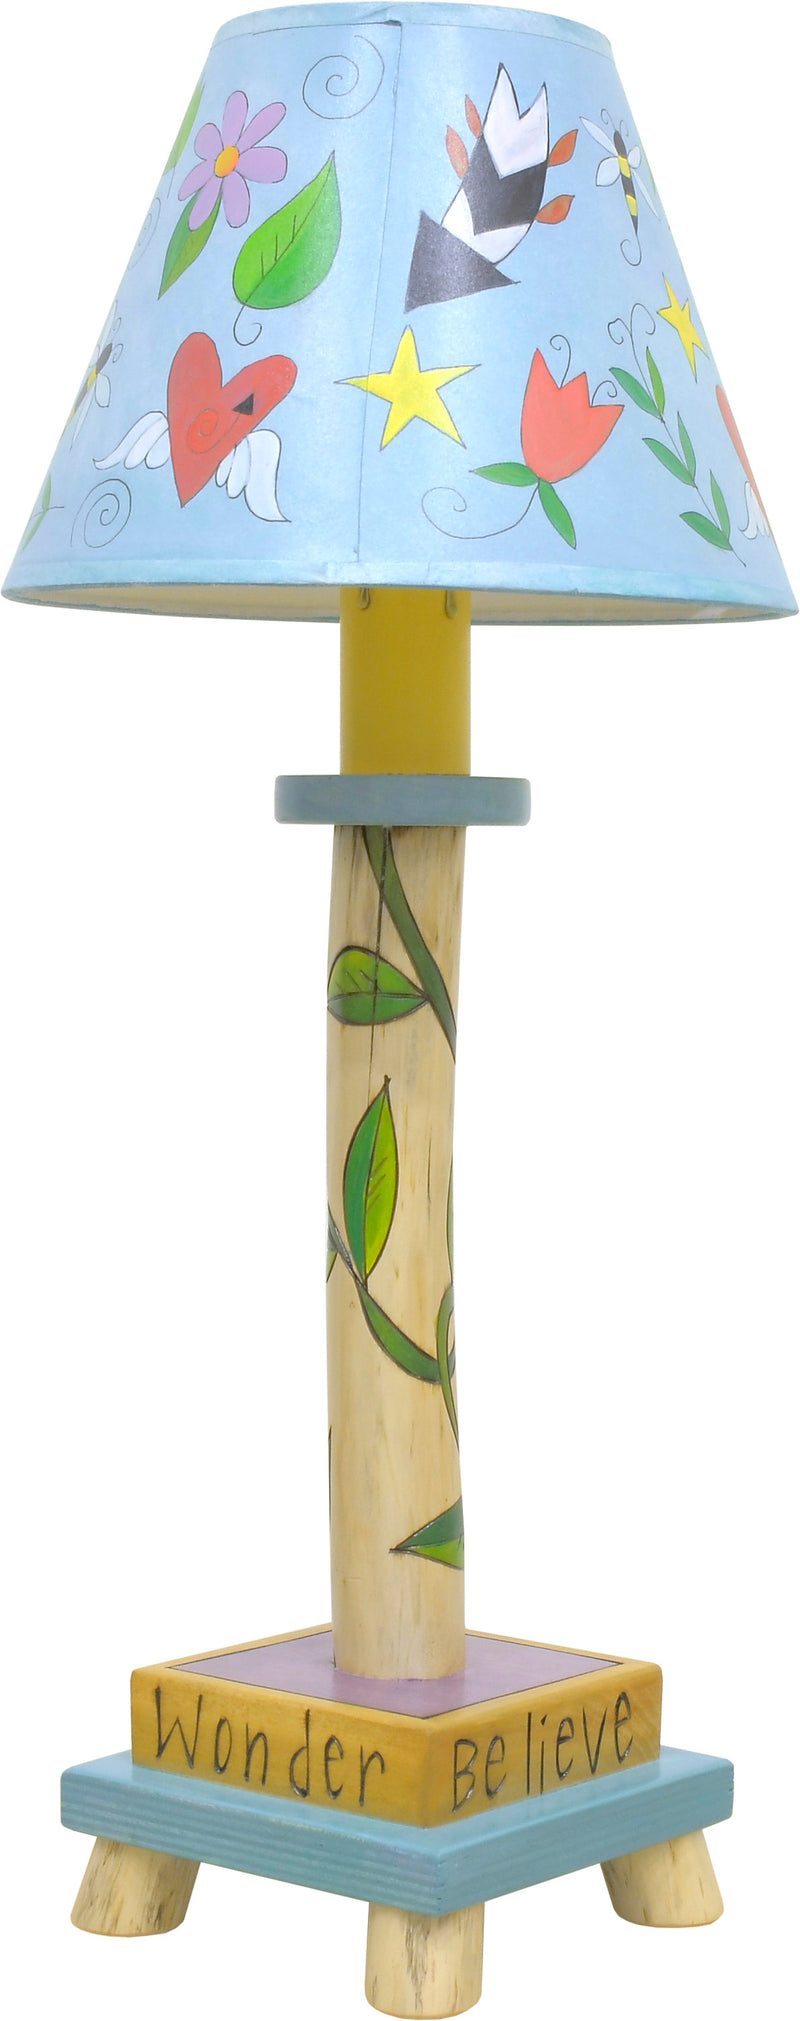 Log Candlestick Lamp –  Dreamy floating icon and vine motif log lamp